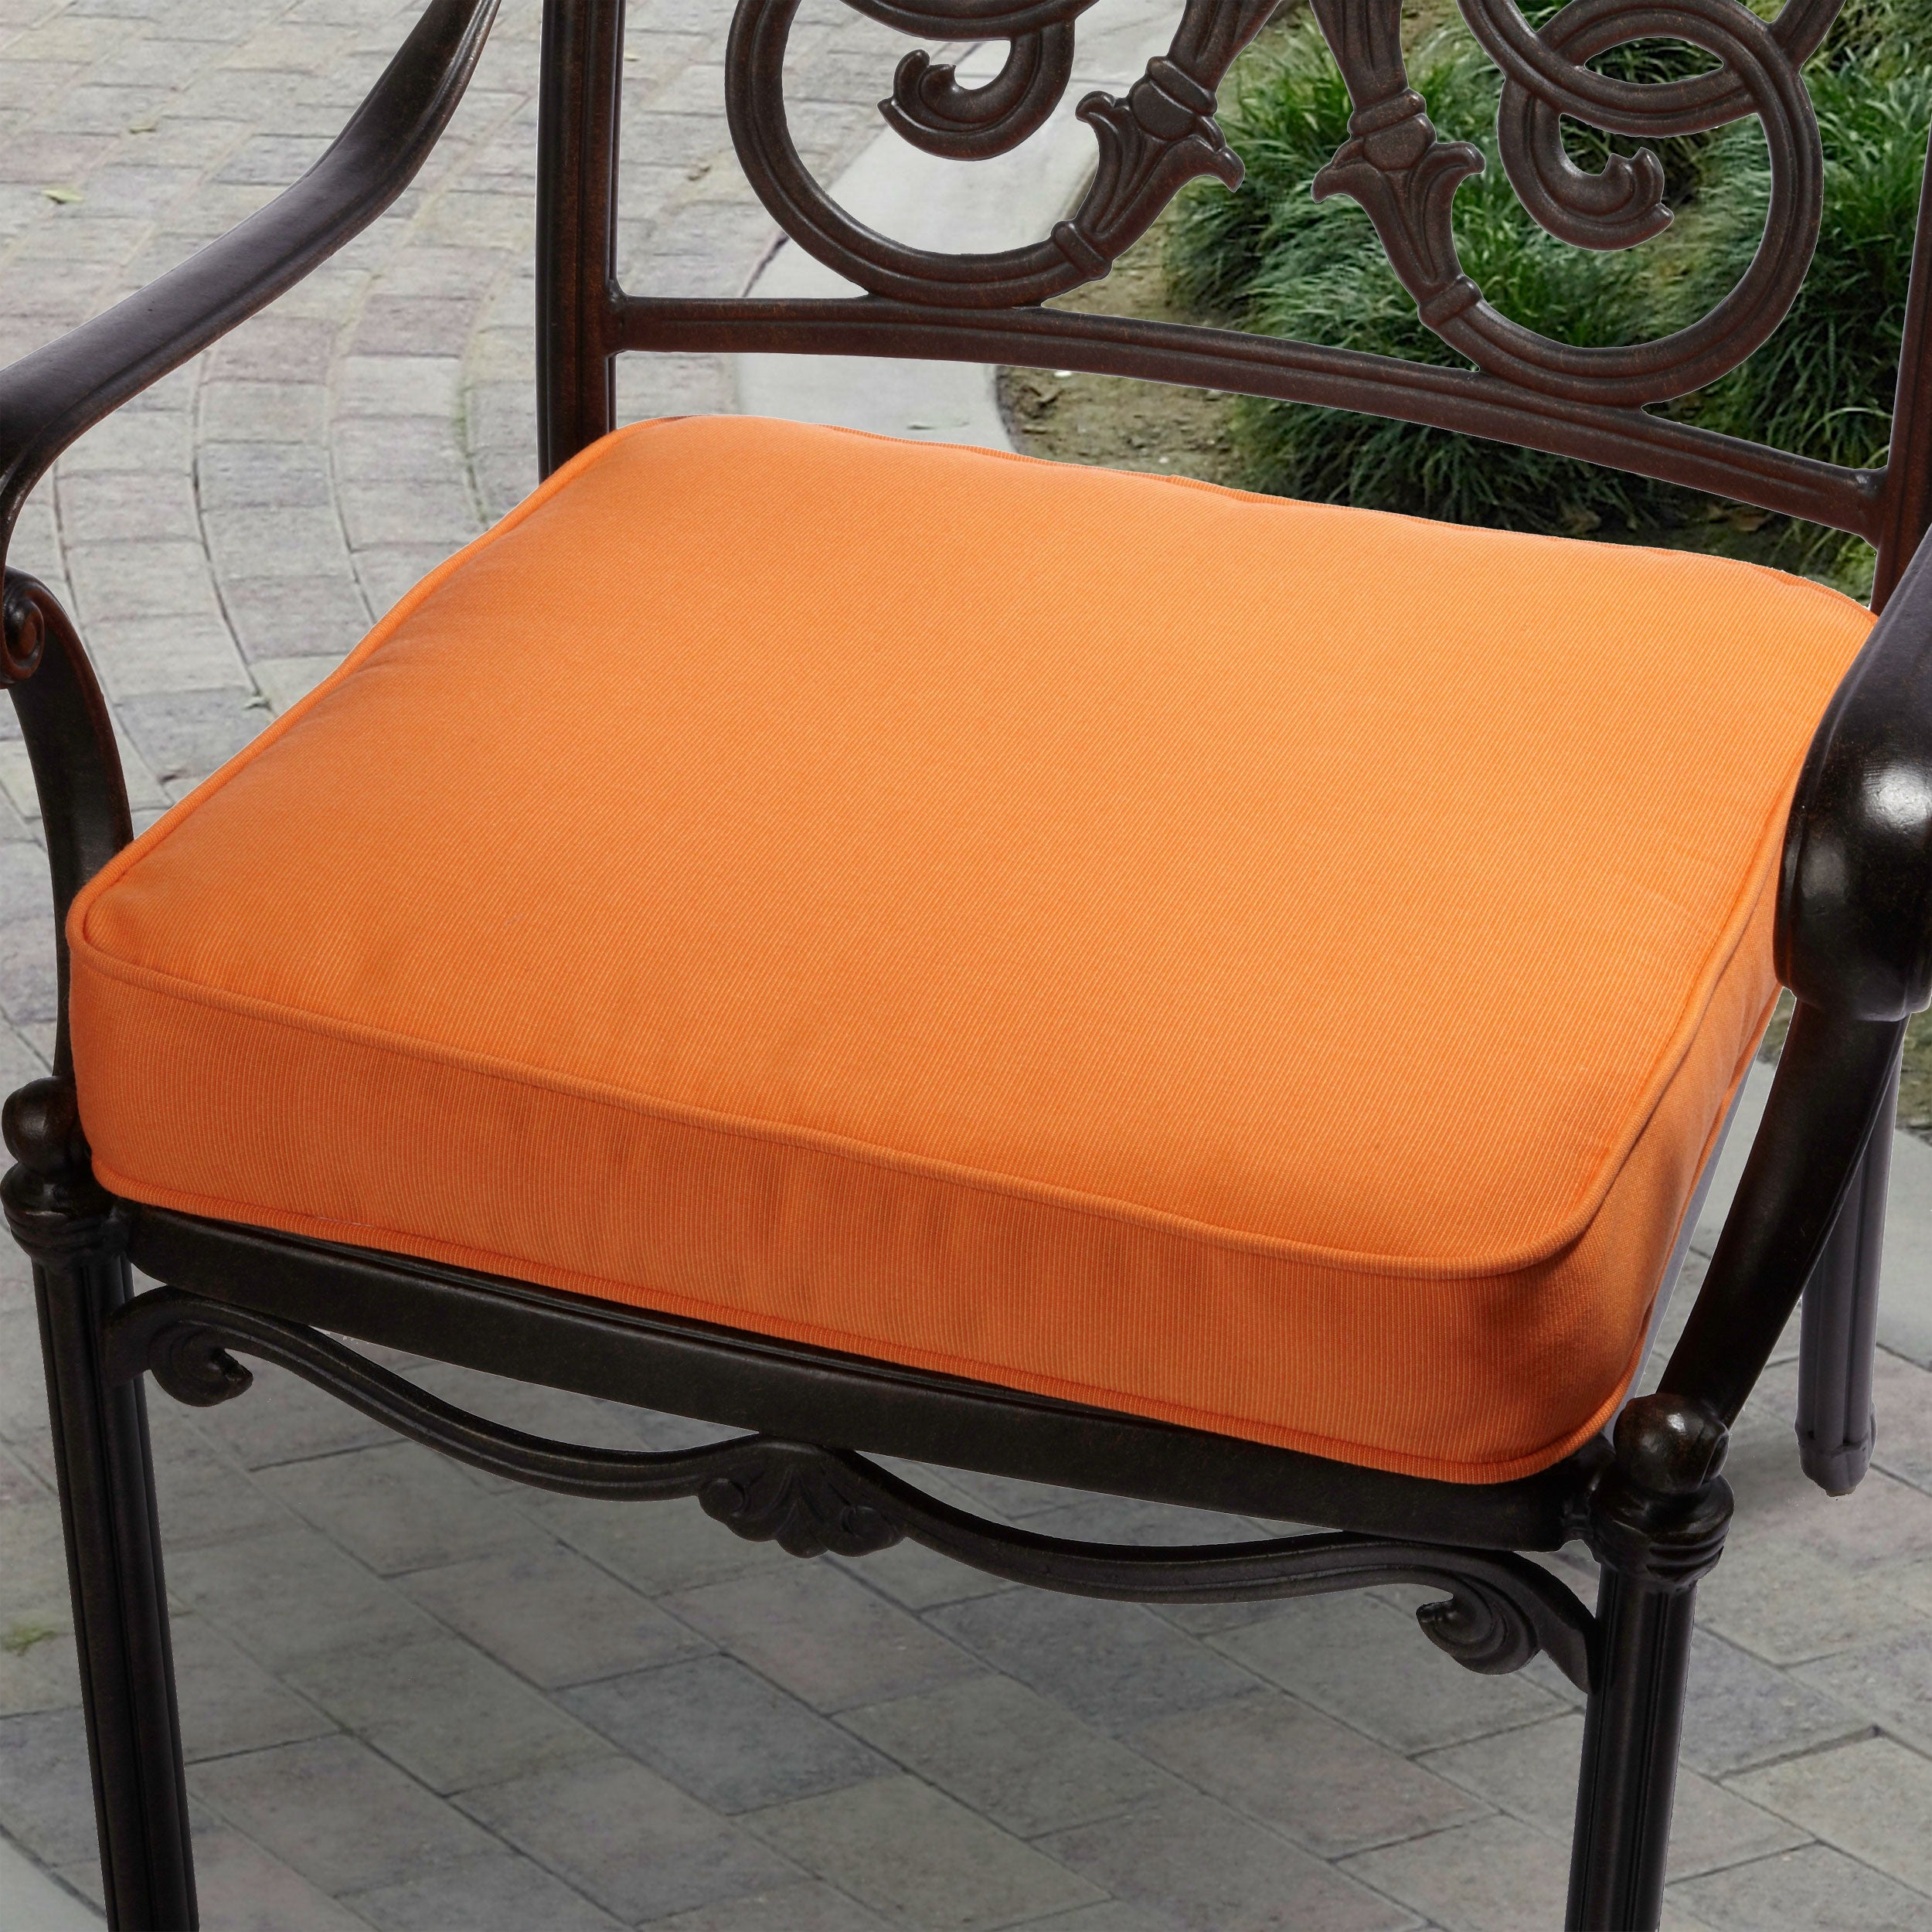 Indoor Outdoor Textured Bright 20 inch Chair Cushion with